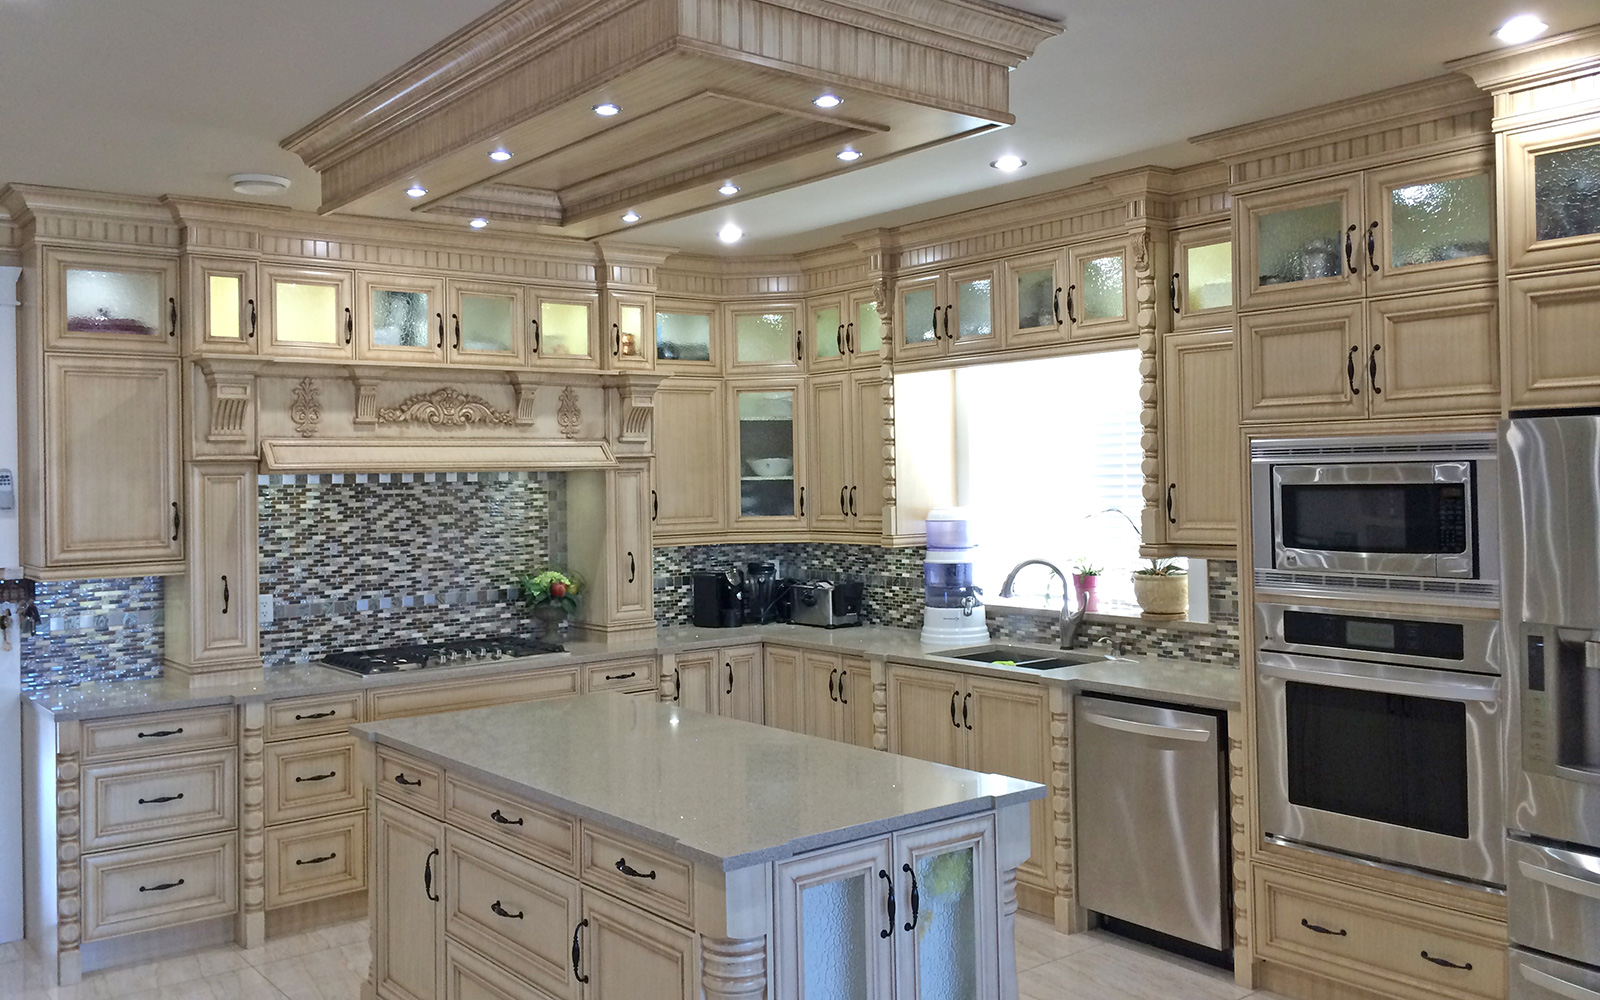 New Kitchen Cabinets Calgary Custom Kitchen Cabinets Ltd Countertops